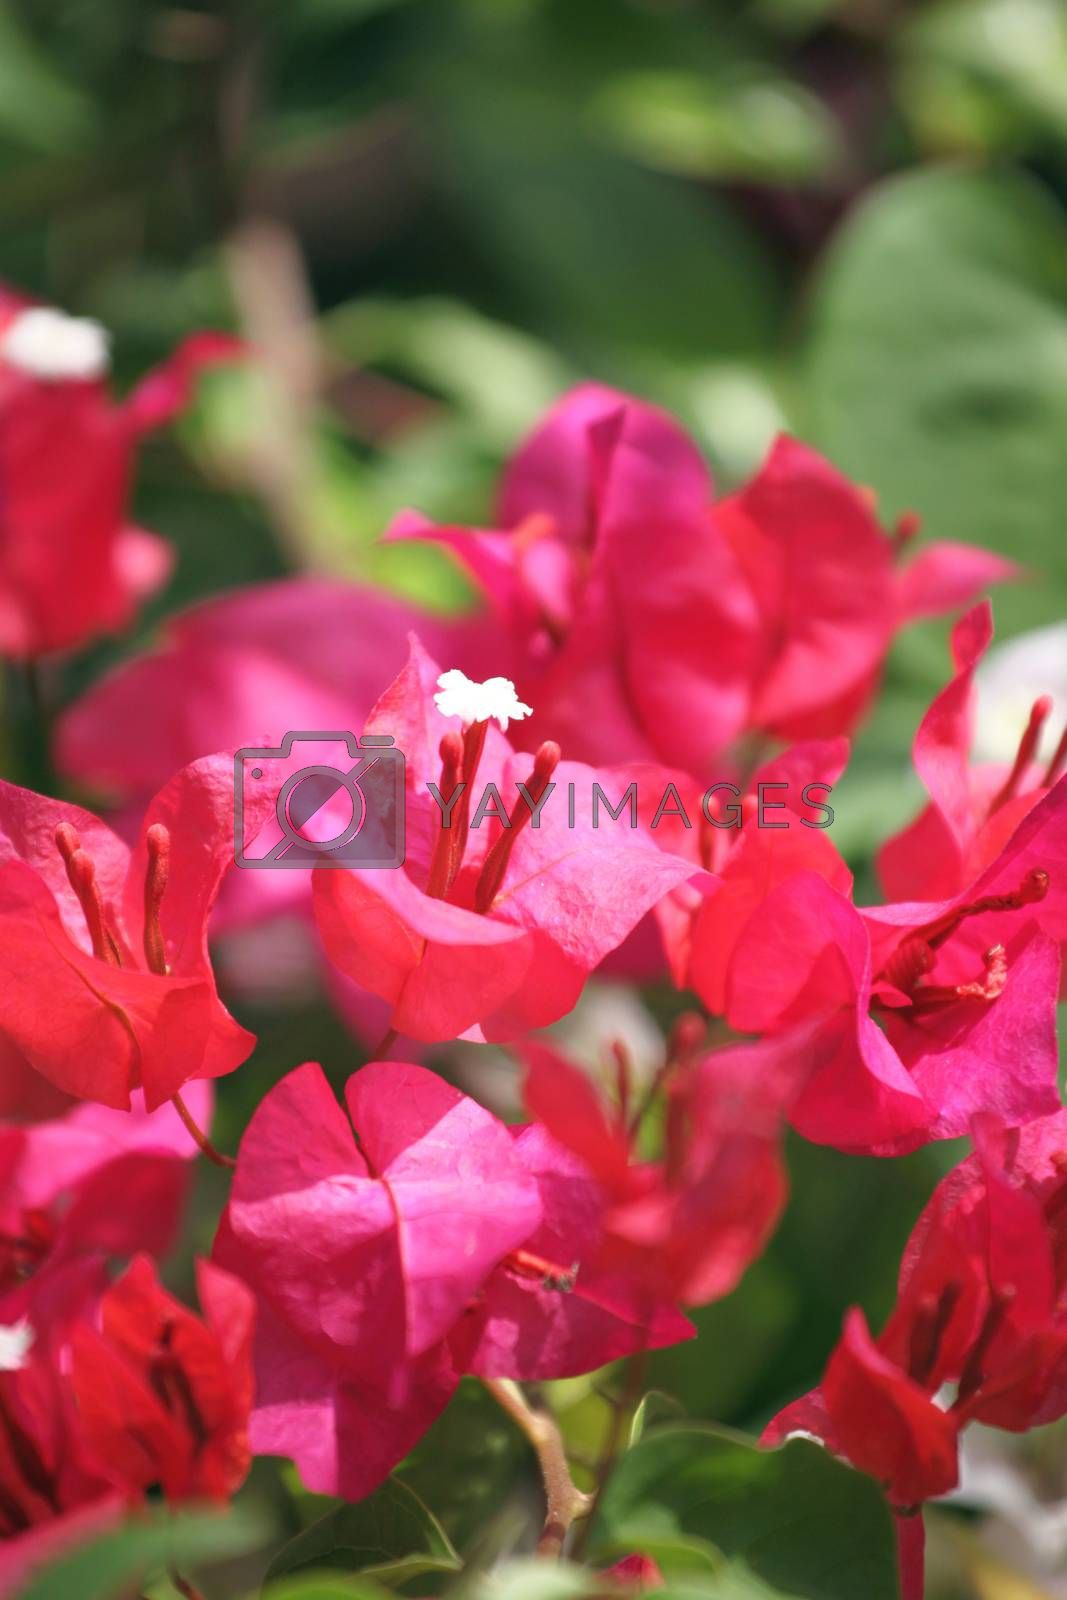 Red bougainvillea flowers in the garden.